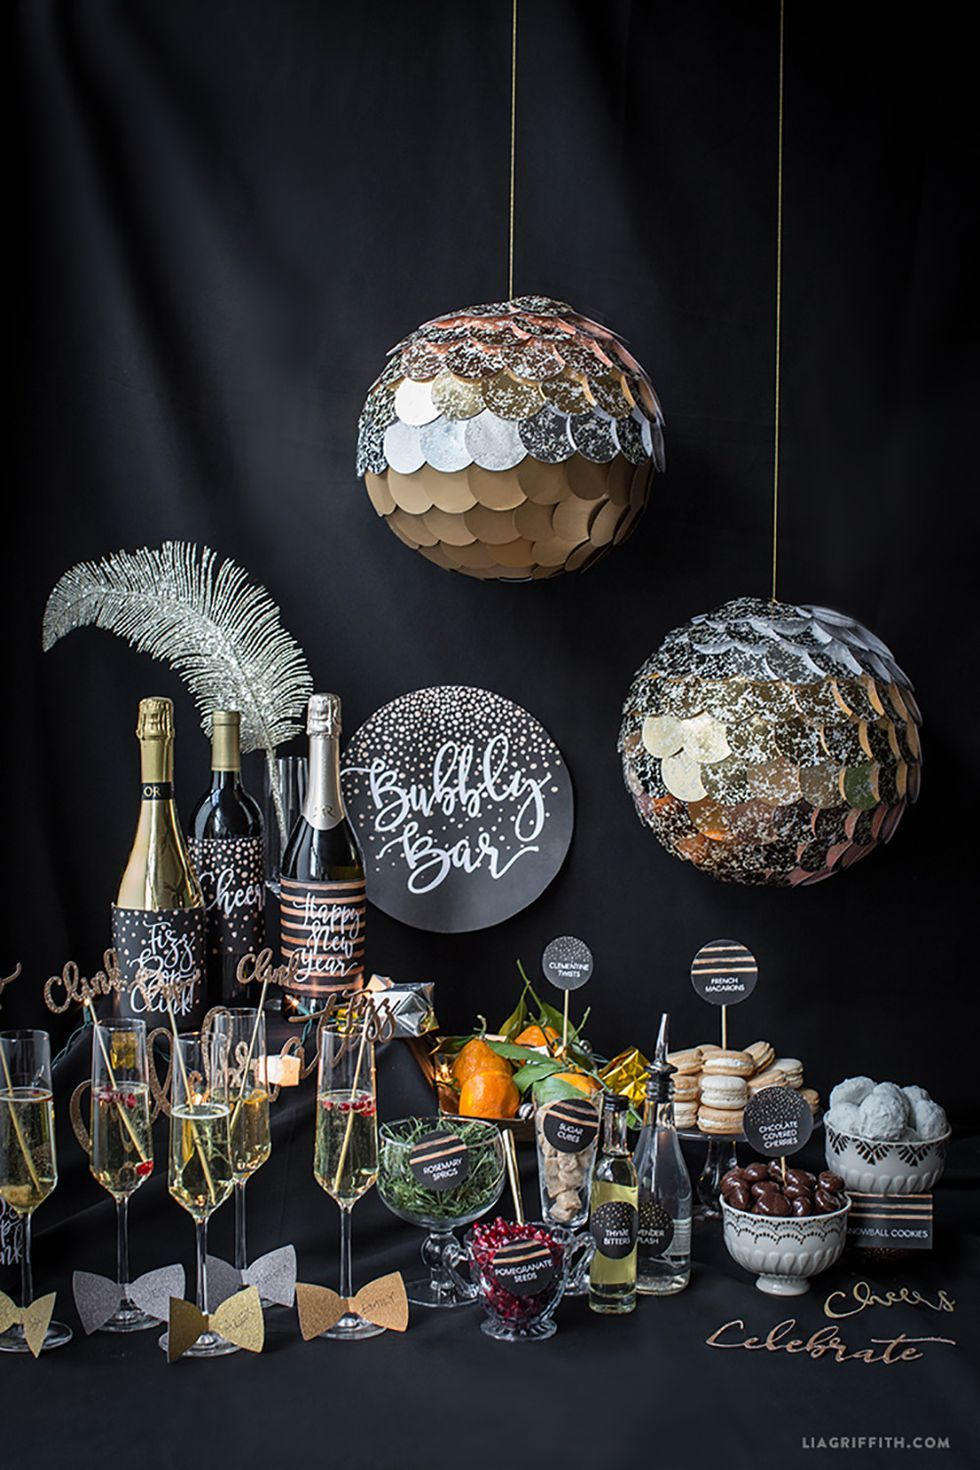 16 DIY Decorations for the Most Festive New Year's Eve Party Ever